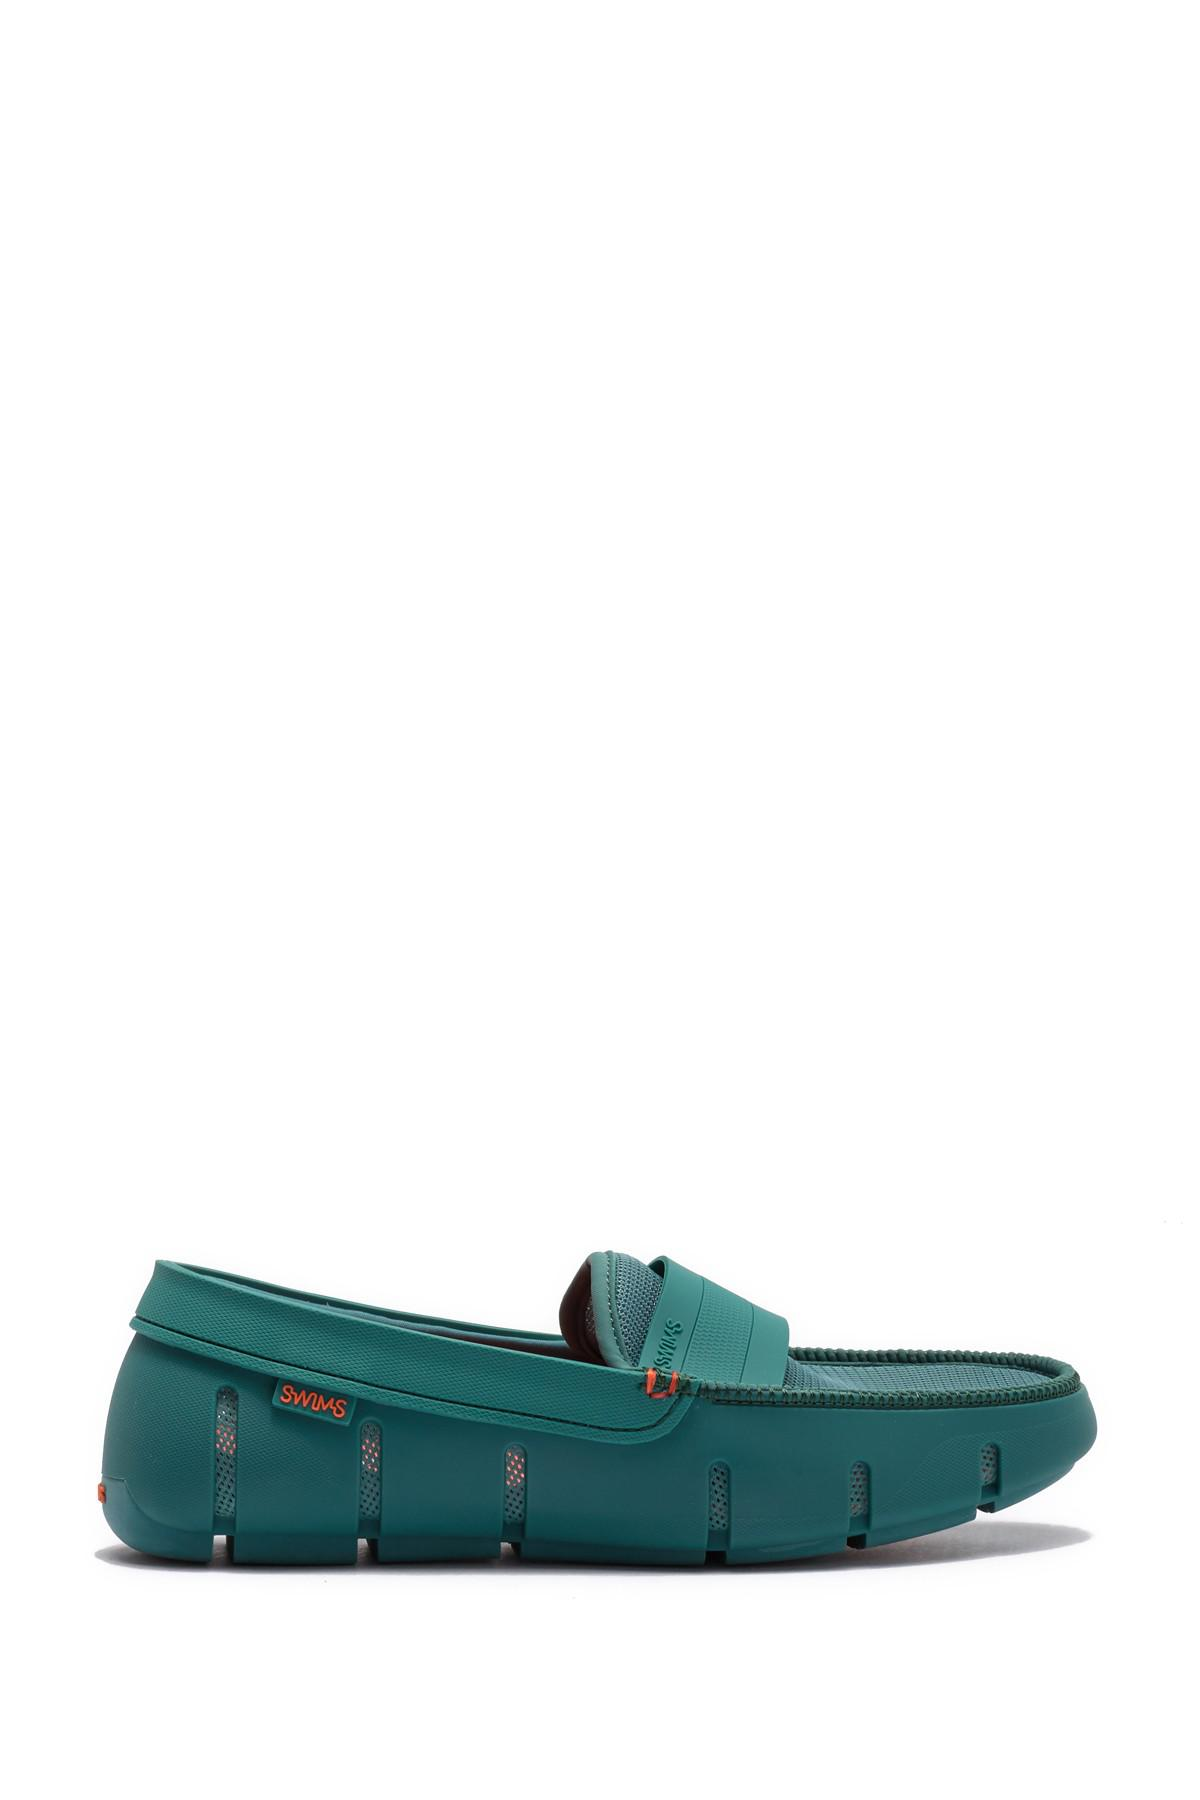 94569f8b333 Swims - Multicolor Stride Single Band Keep Loafer for Men - Lyst. View  fullscreen